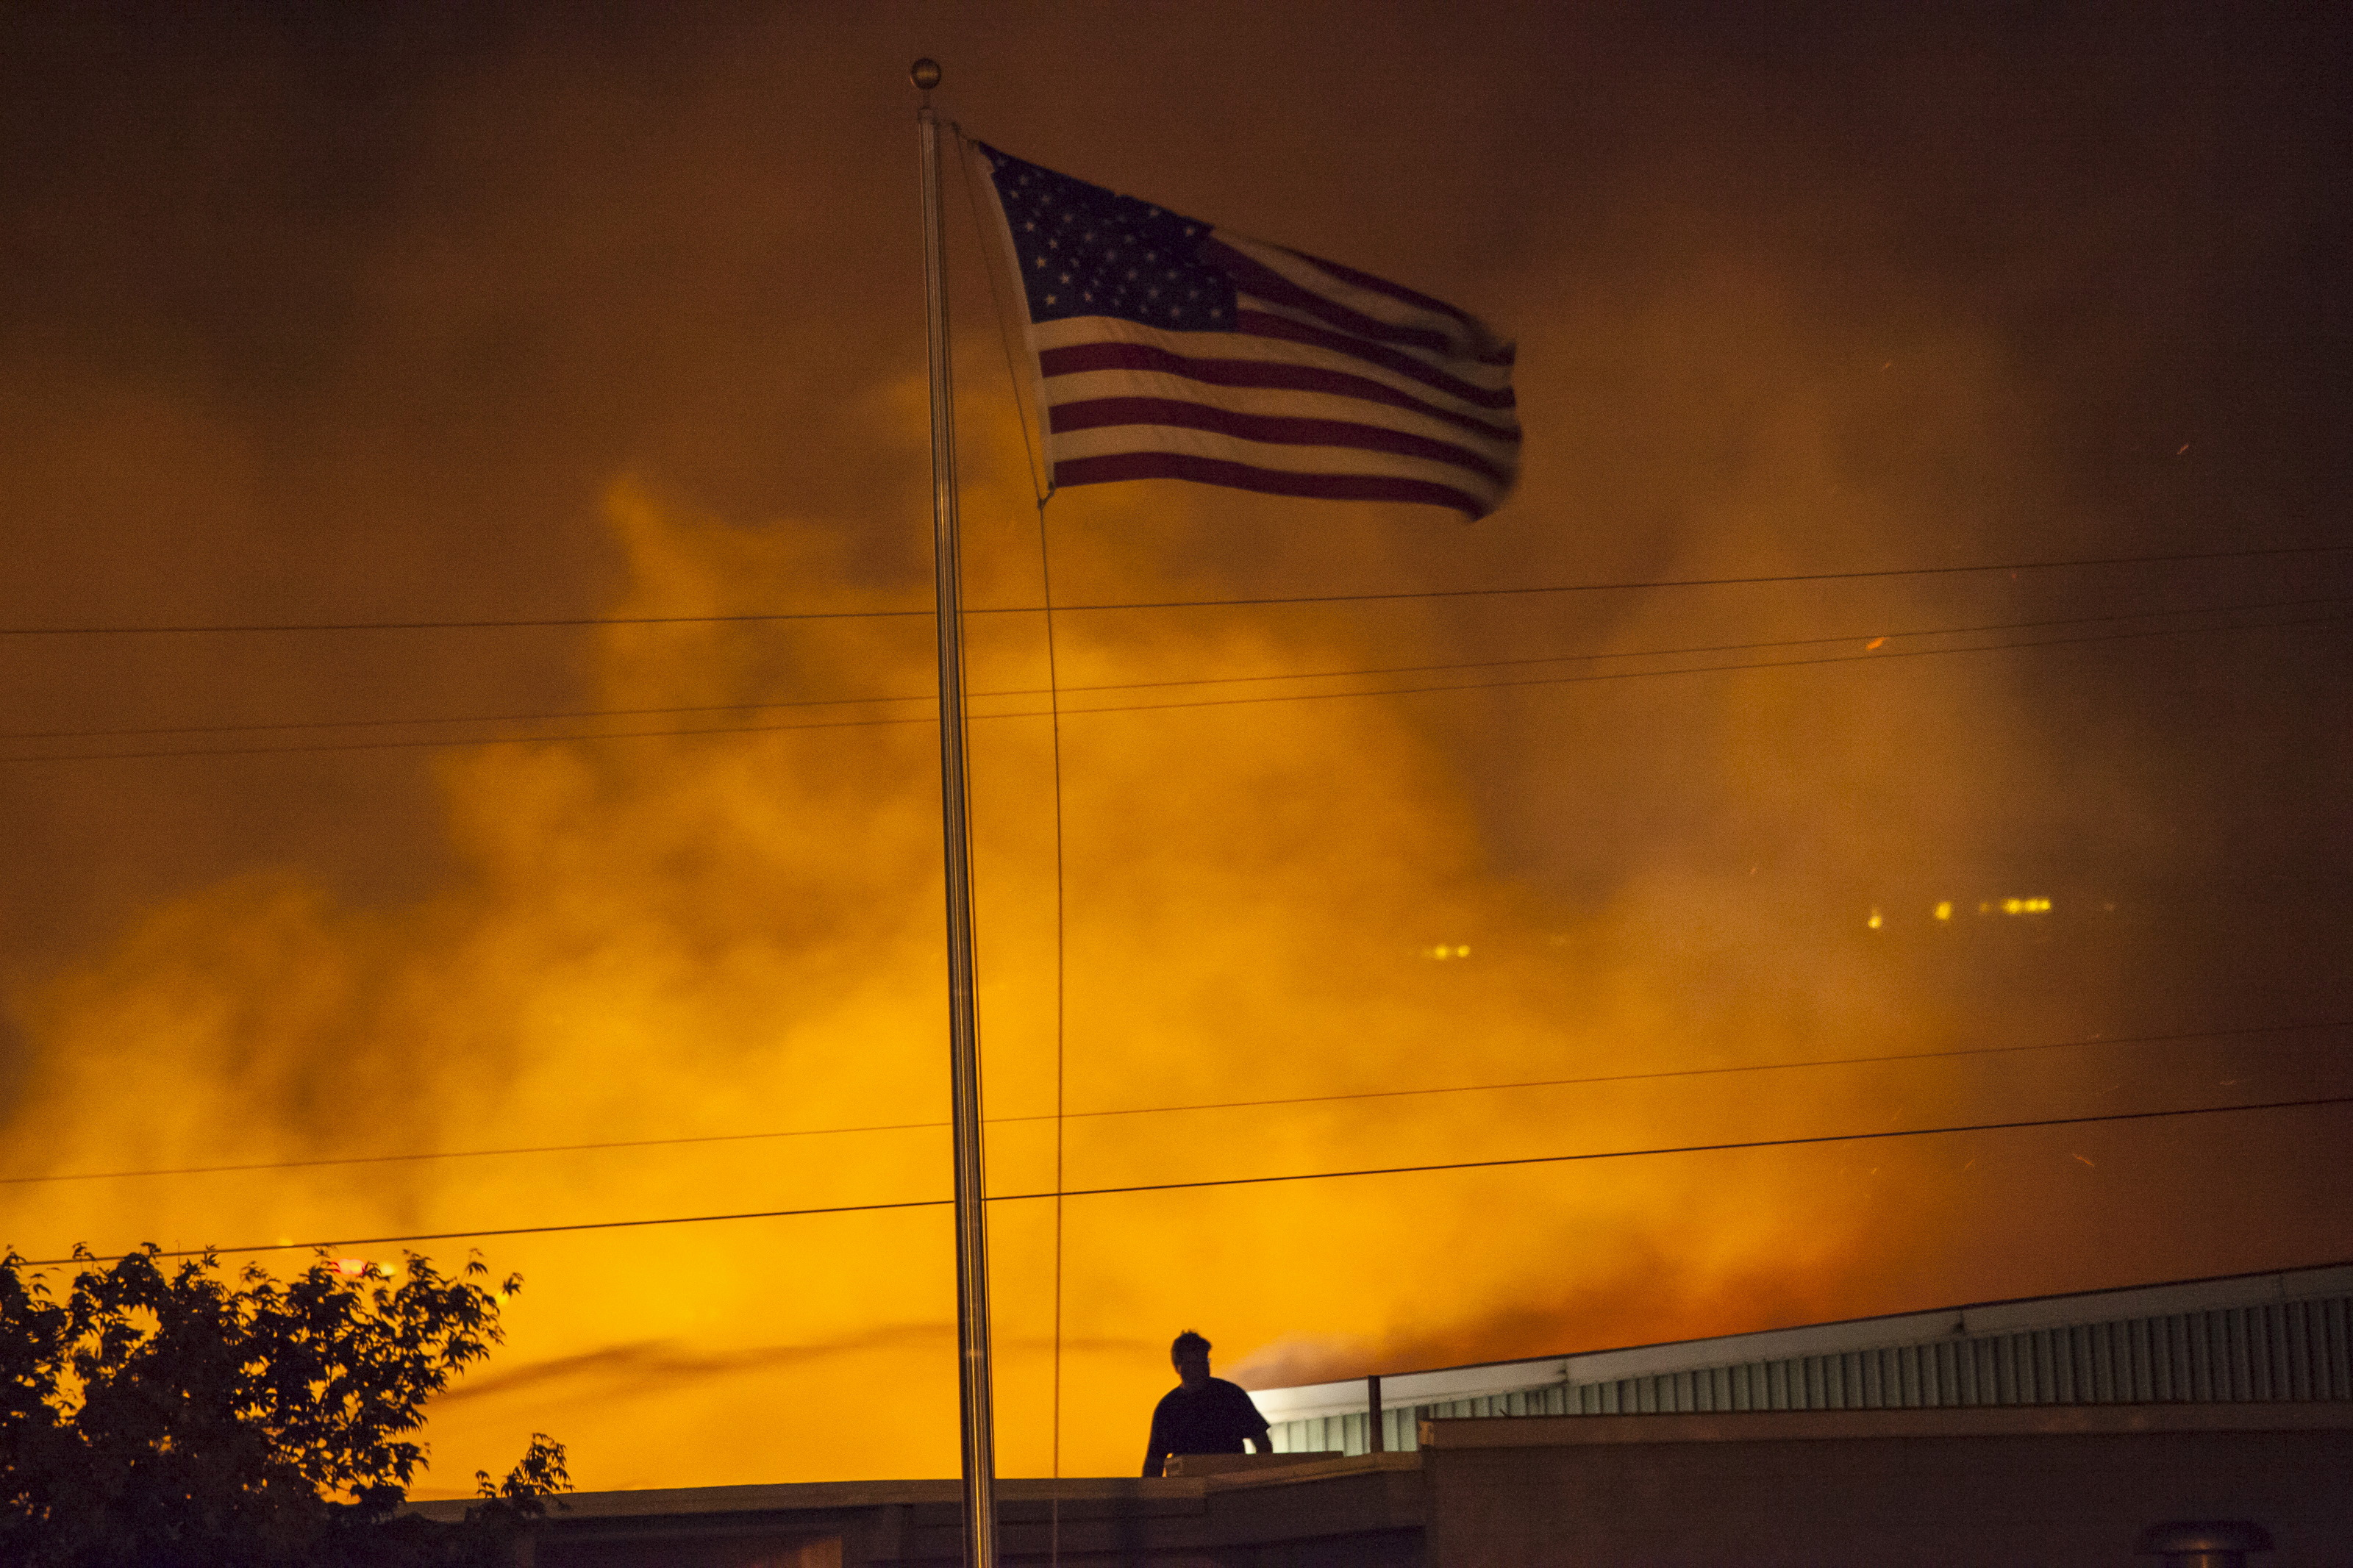 A commercial building burns after being ignited by the Sleepy Hollow fire in Wenatchee, Washington June 29, 2015